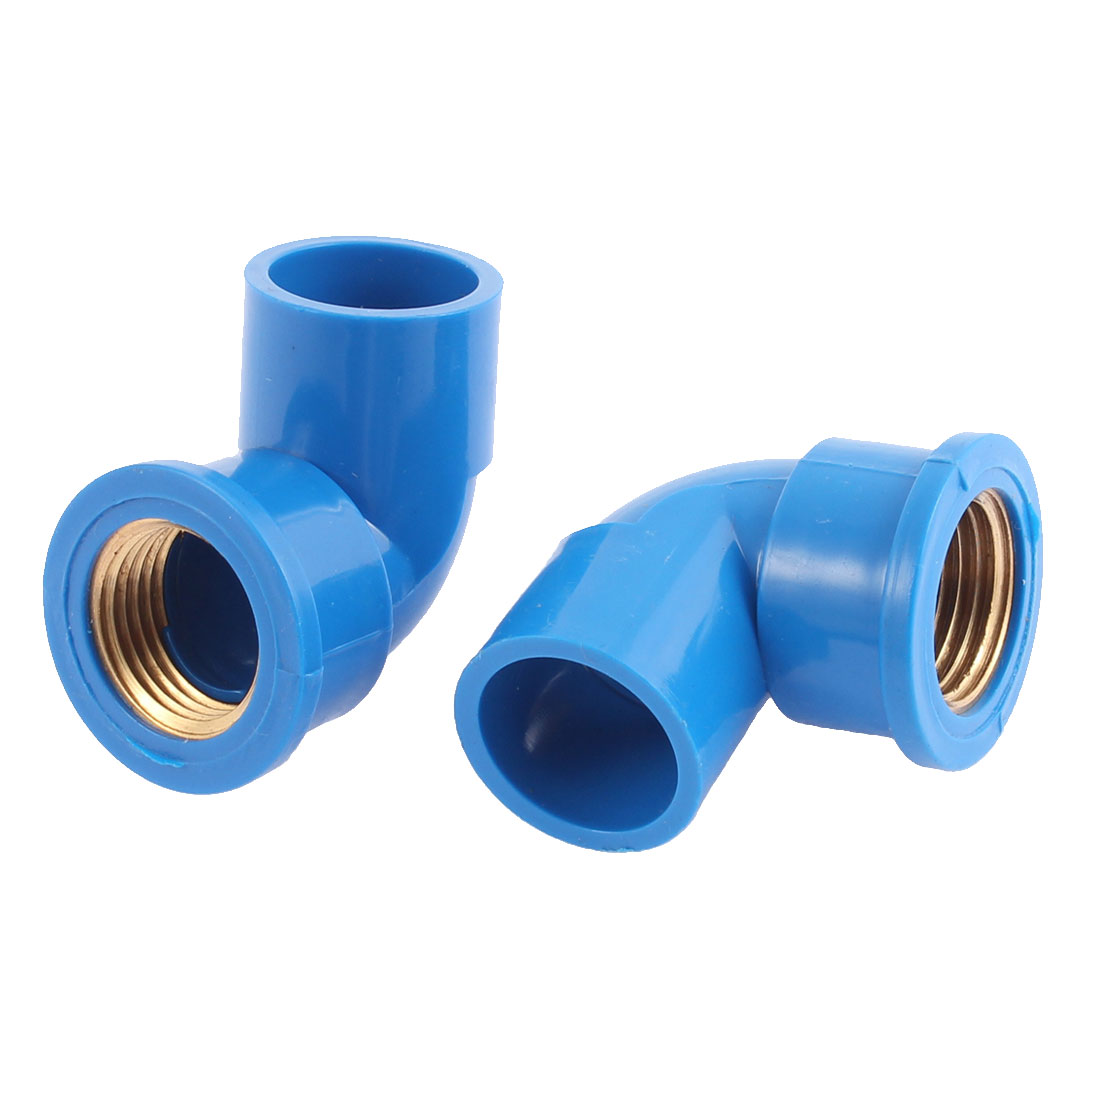 Right Angle Pipe Hose Elbow Joiner Connector 1/2BSP Female Thread 4PCS